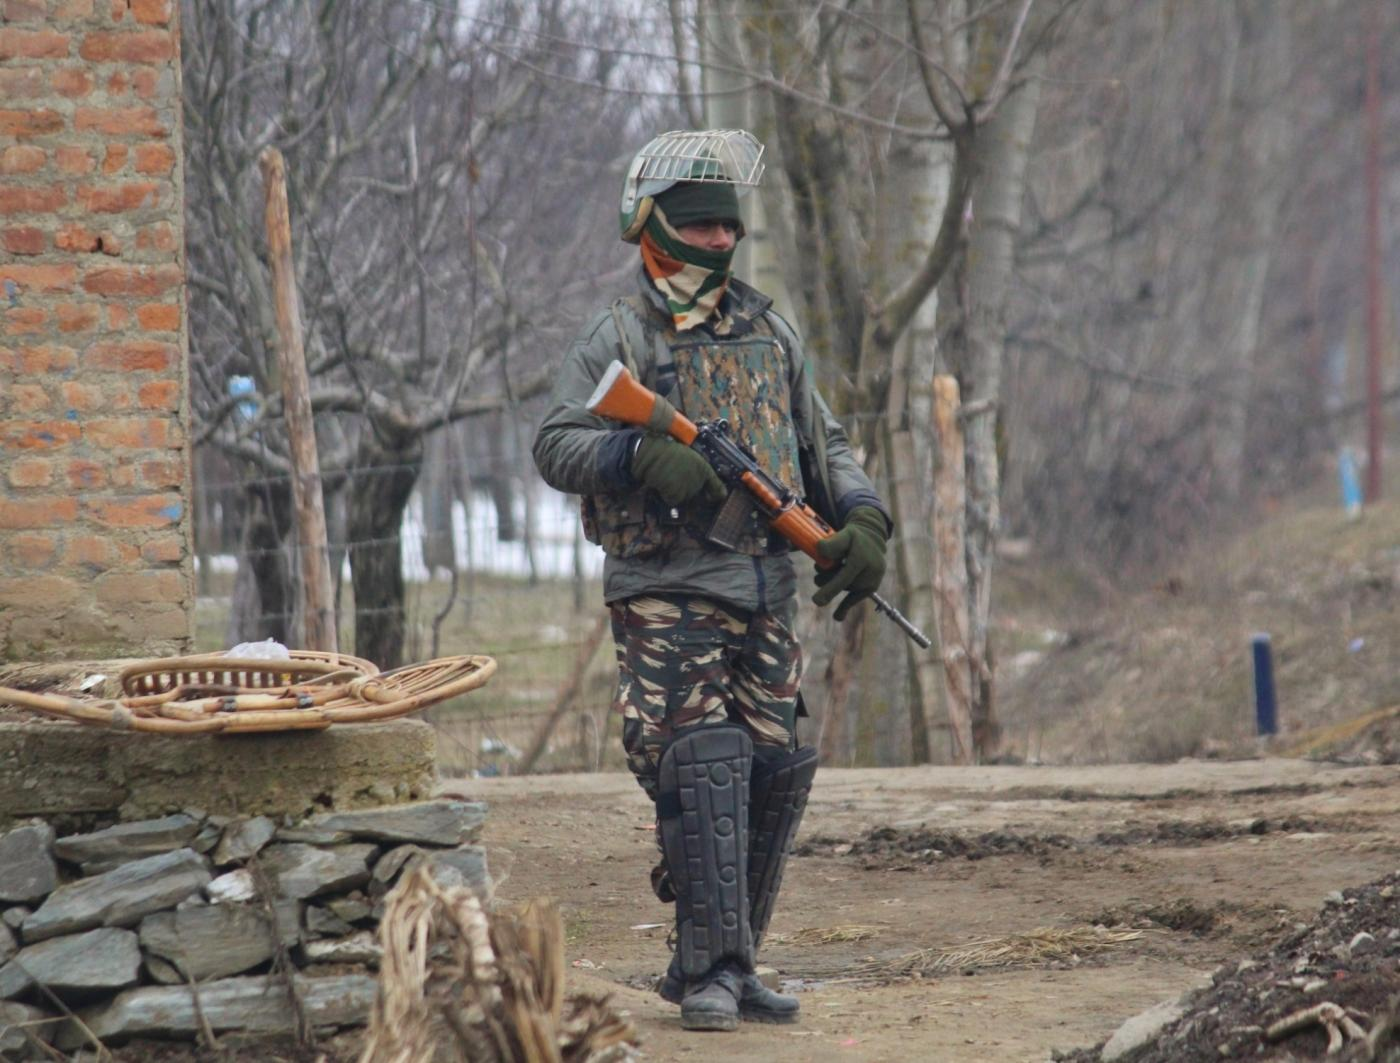 Kupwara: A soldier at the site of an encounter with militants in Jammu and Kashmir's Kupwara district on March 1, 2019. Two militants were killed in the gunfight. (Photo: IANS) by .